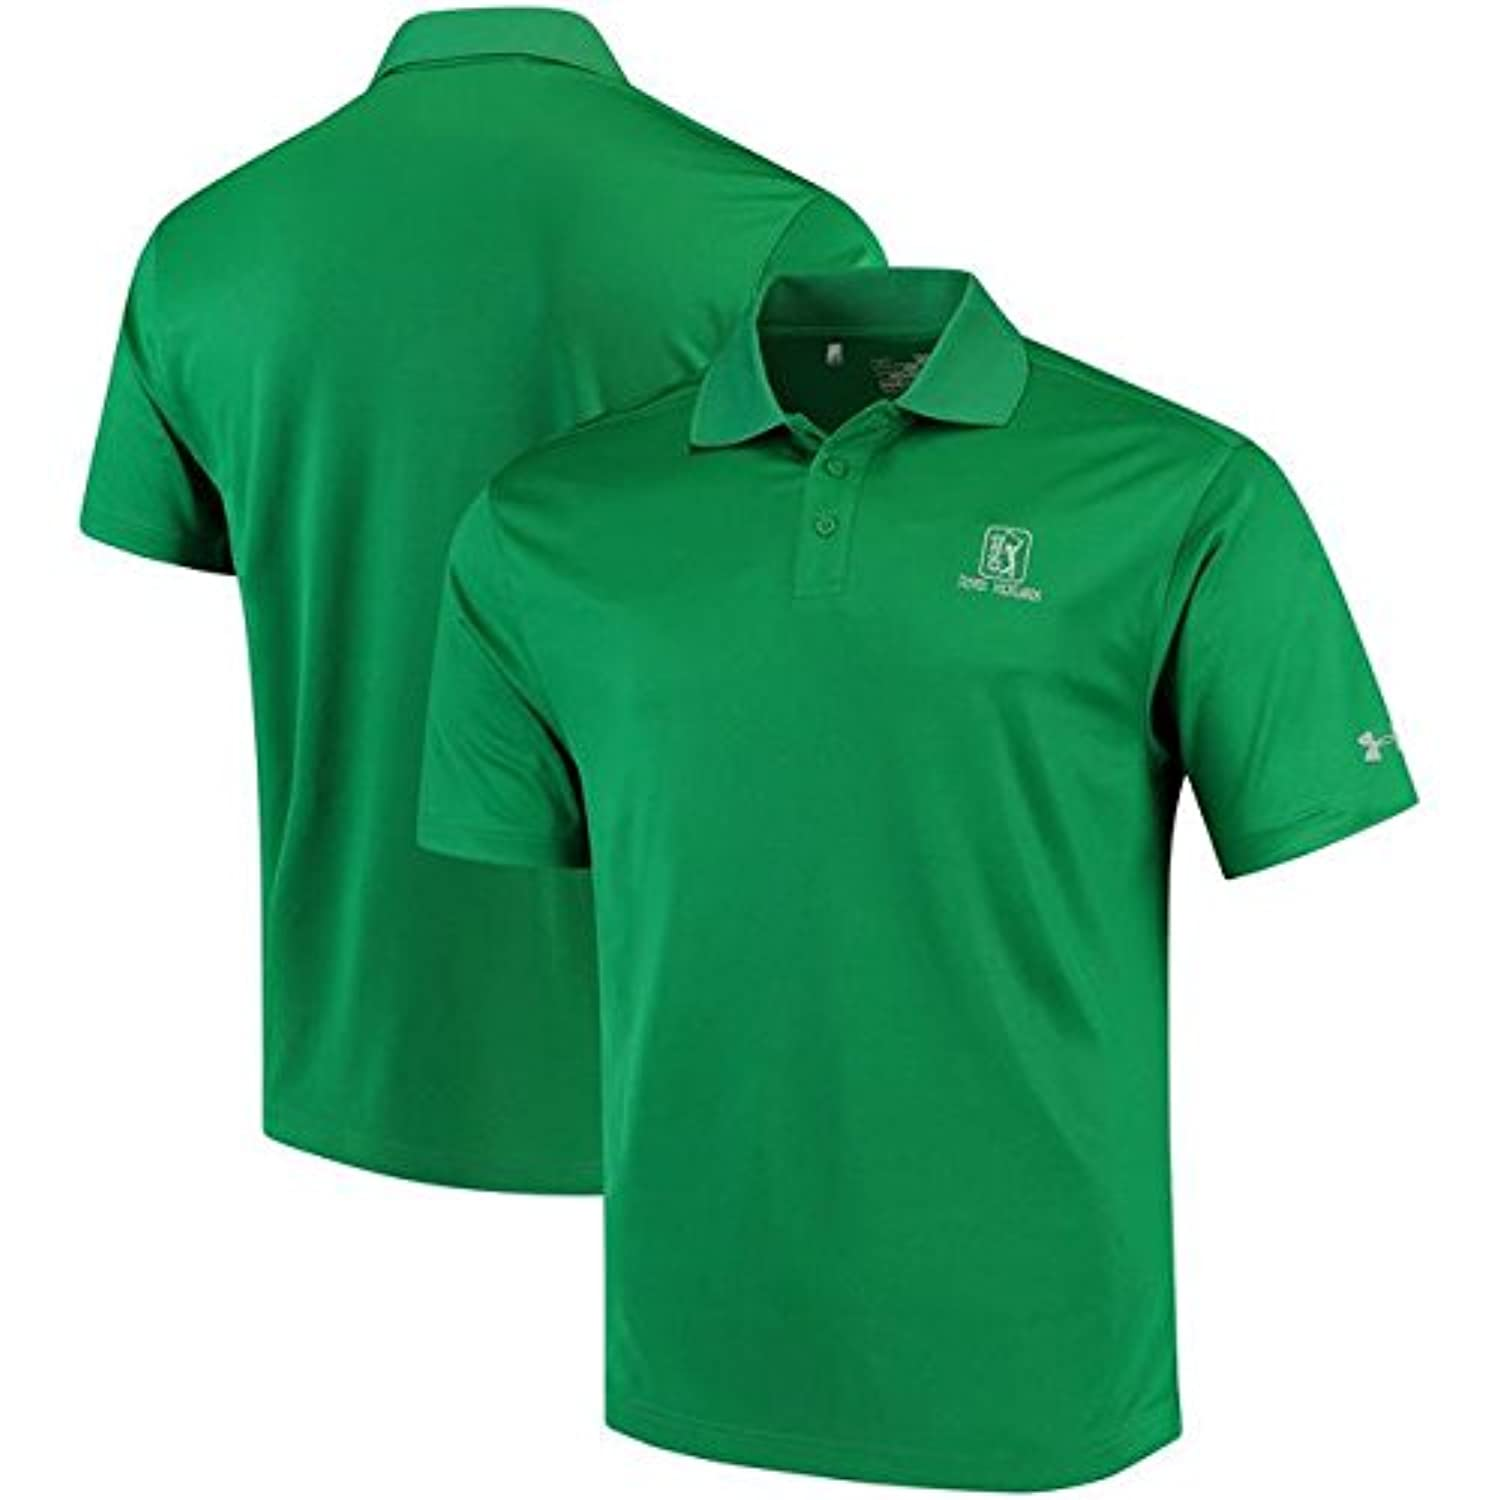 Under Armour Under Armour TPC River Highlands Kelly Green Performance Polo スポーツ用品 【並行輸入品】